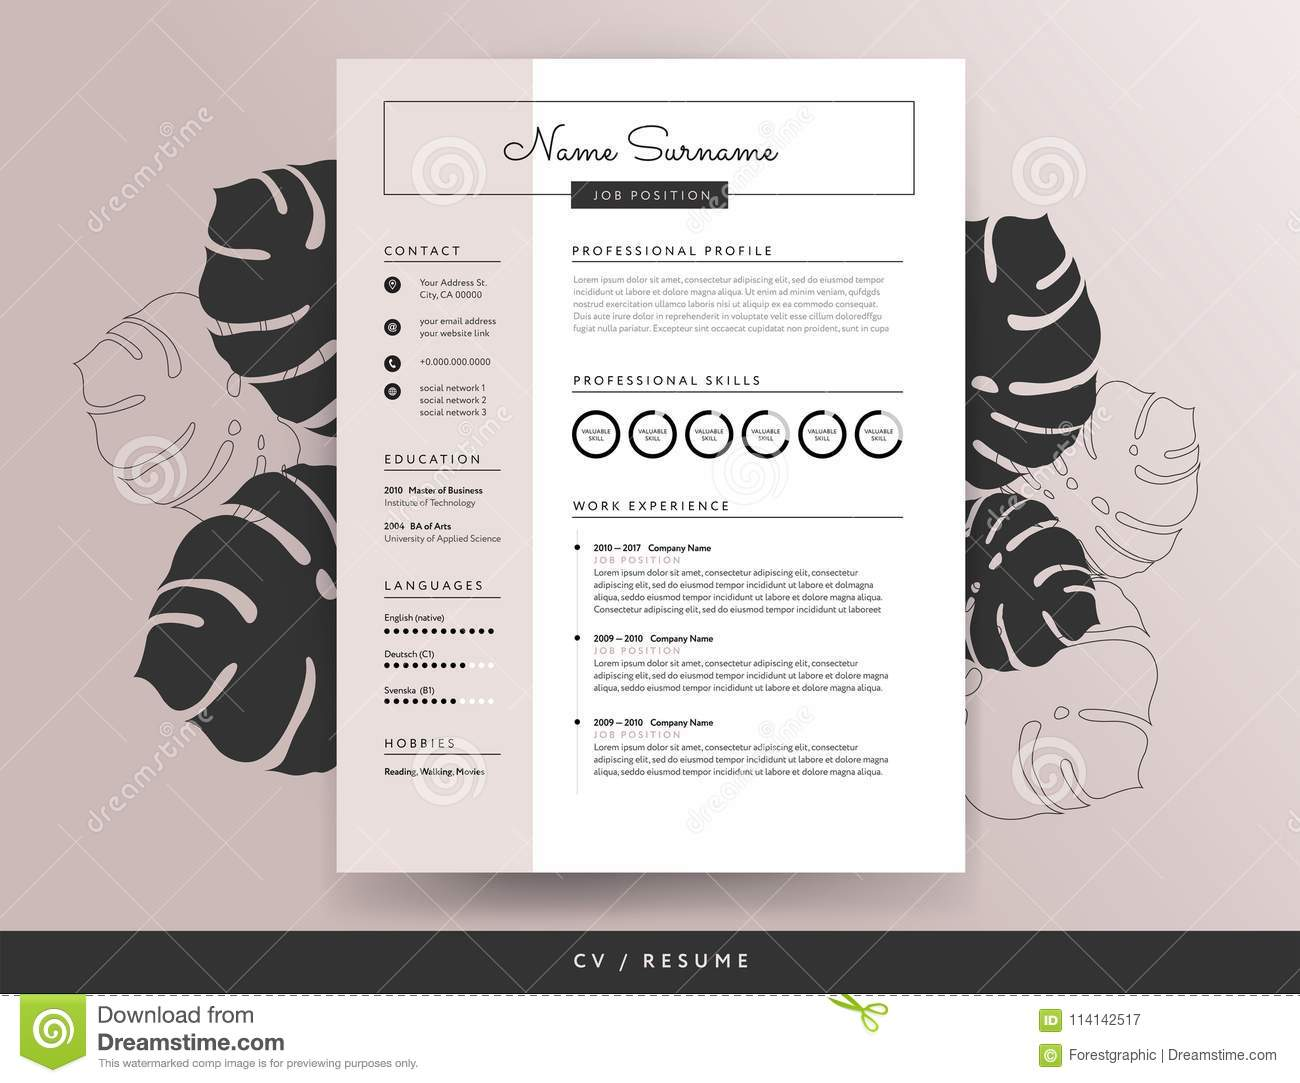 feminine cv resume template - vector illustration stock vector